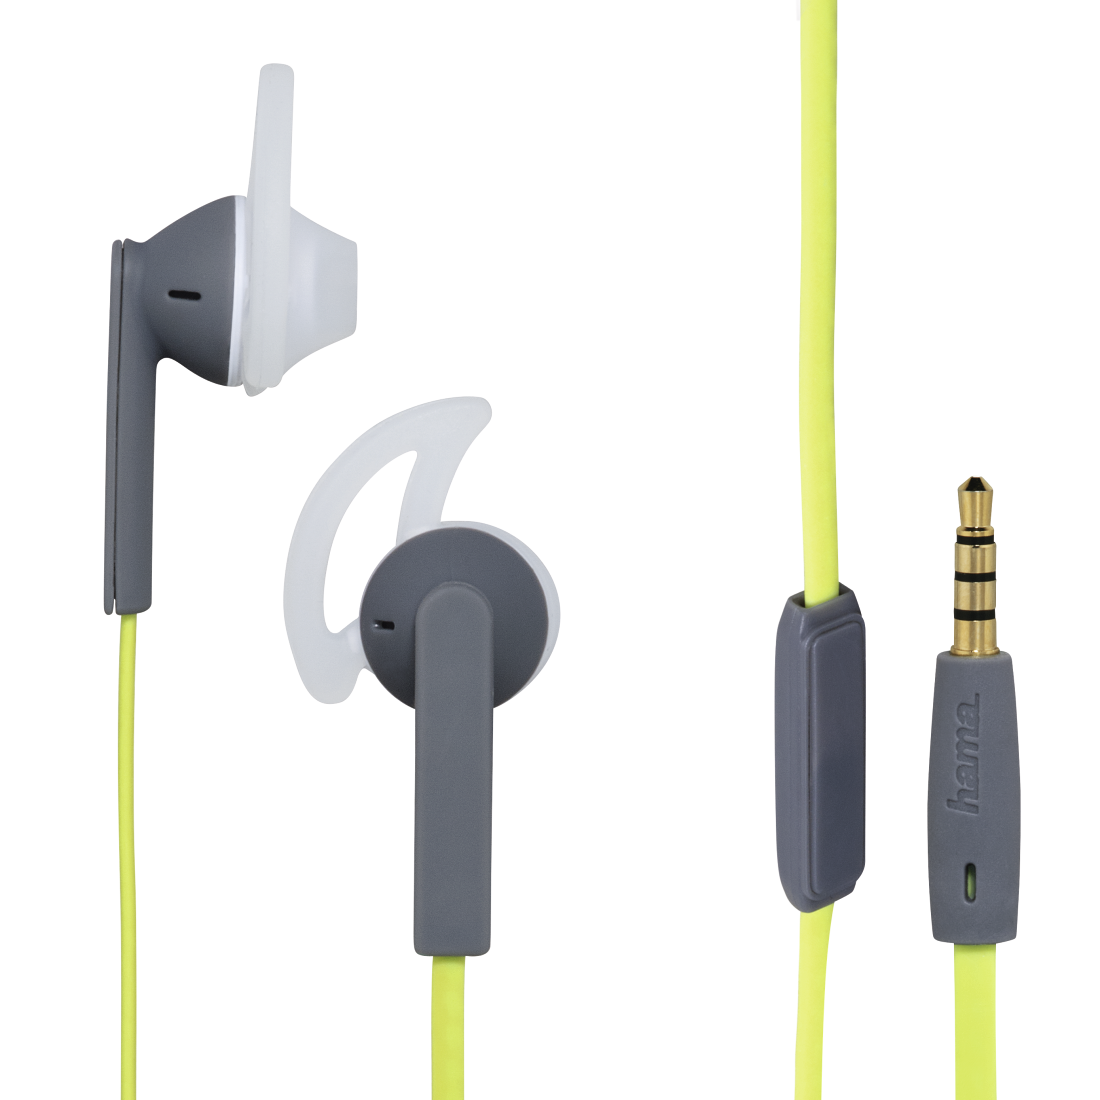 abx High-Res Image - Hama, Action + Stereo Earphones, green/grey